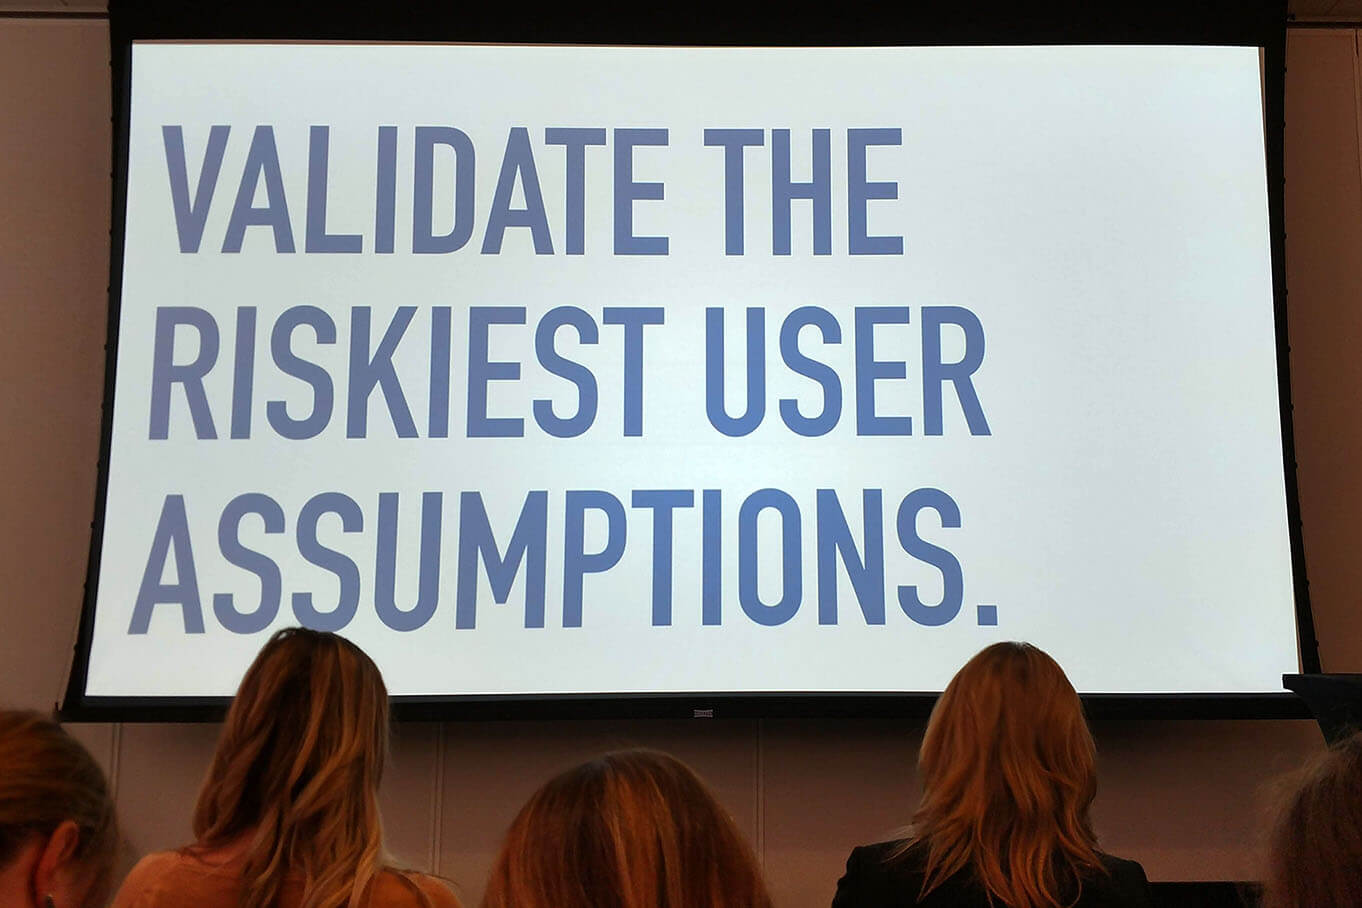 Validate the Riskiest User Assumptions